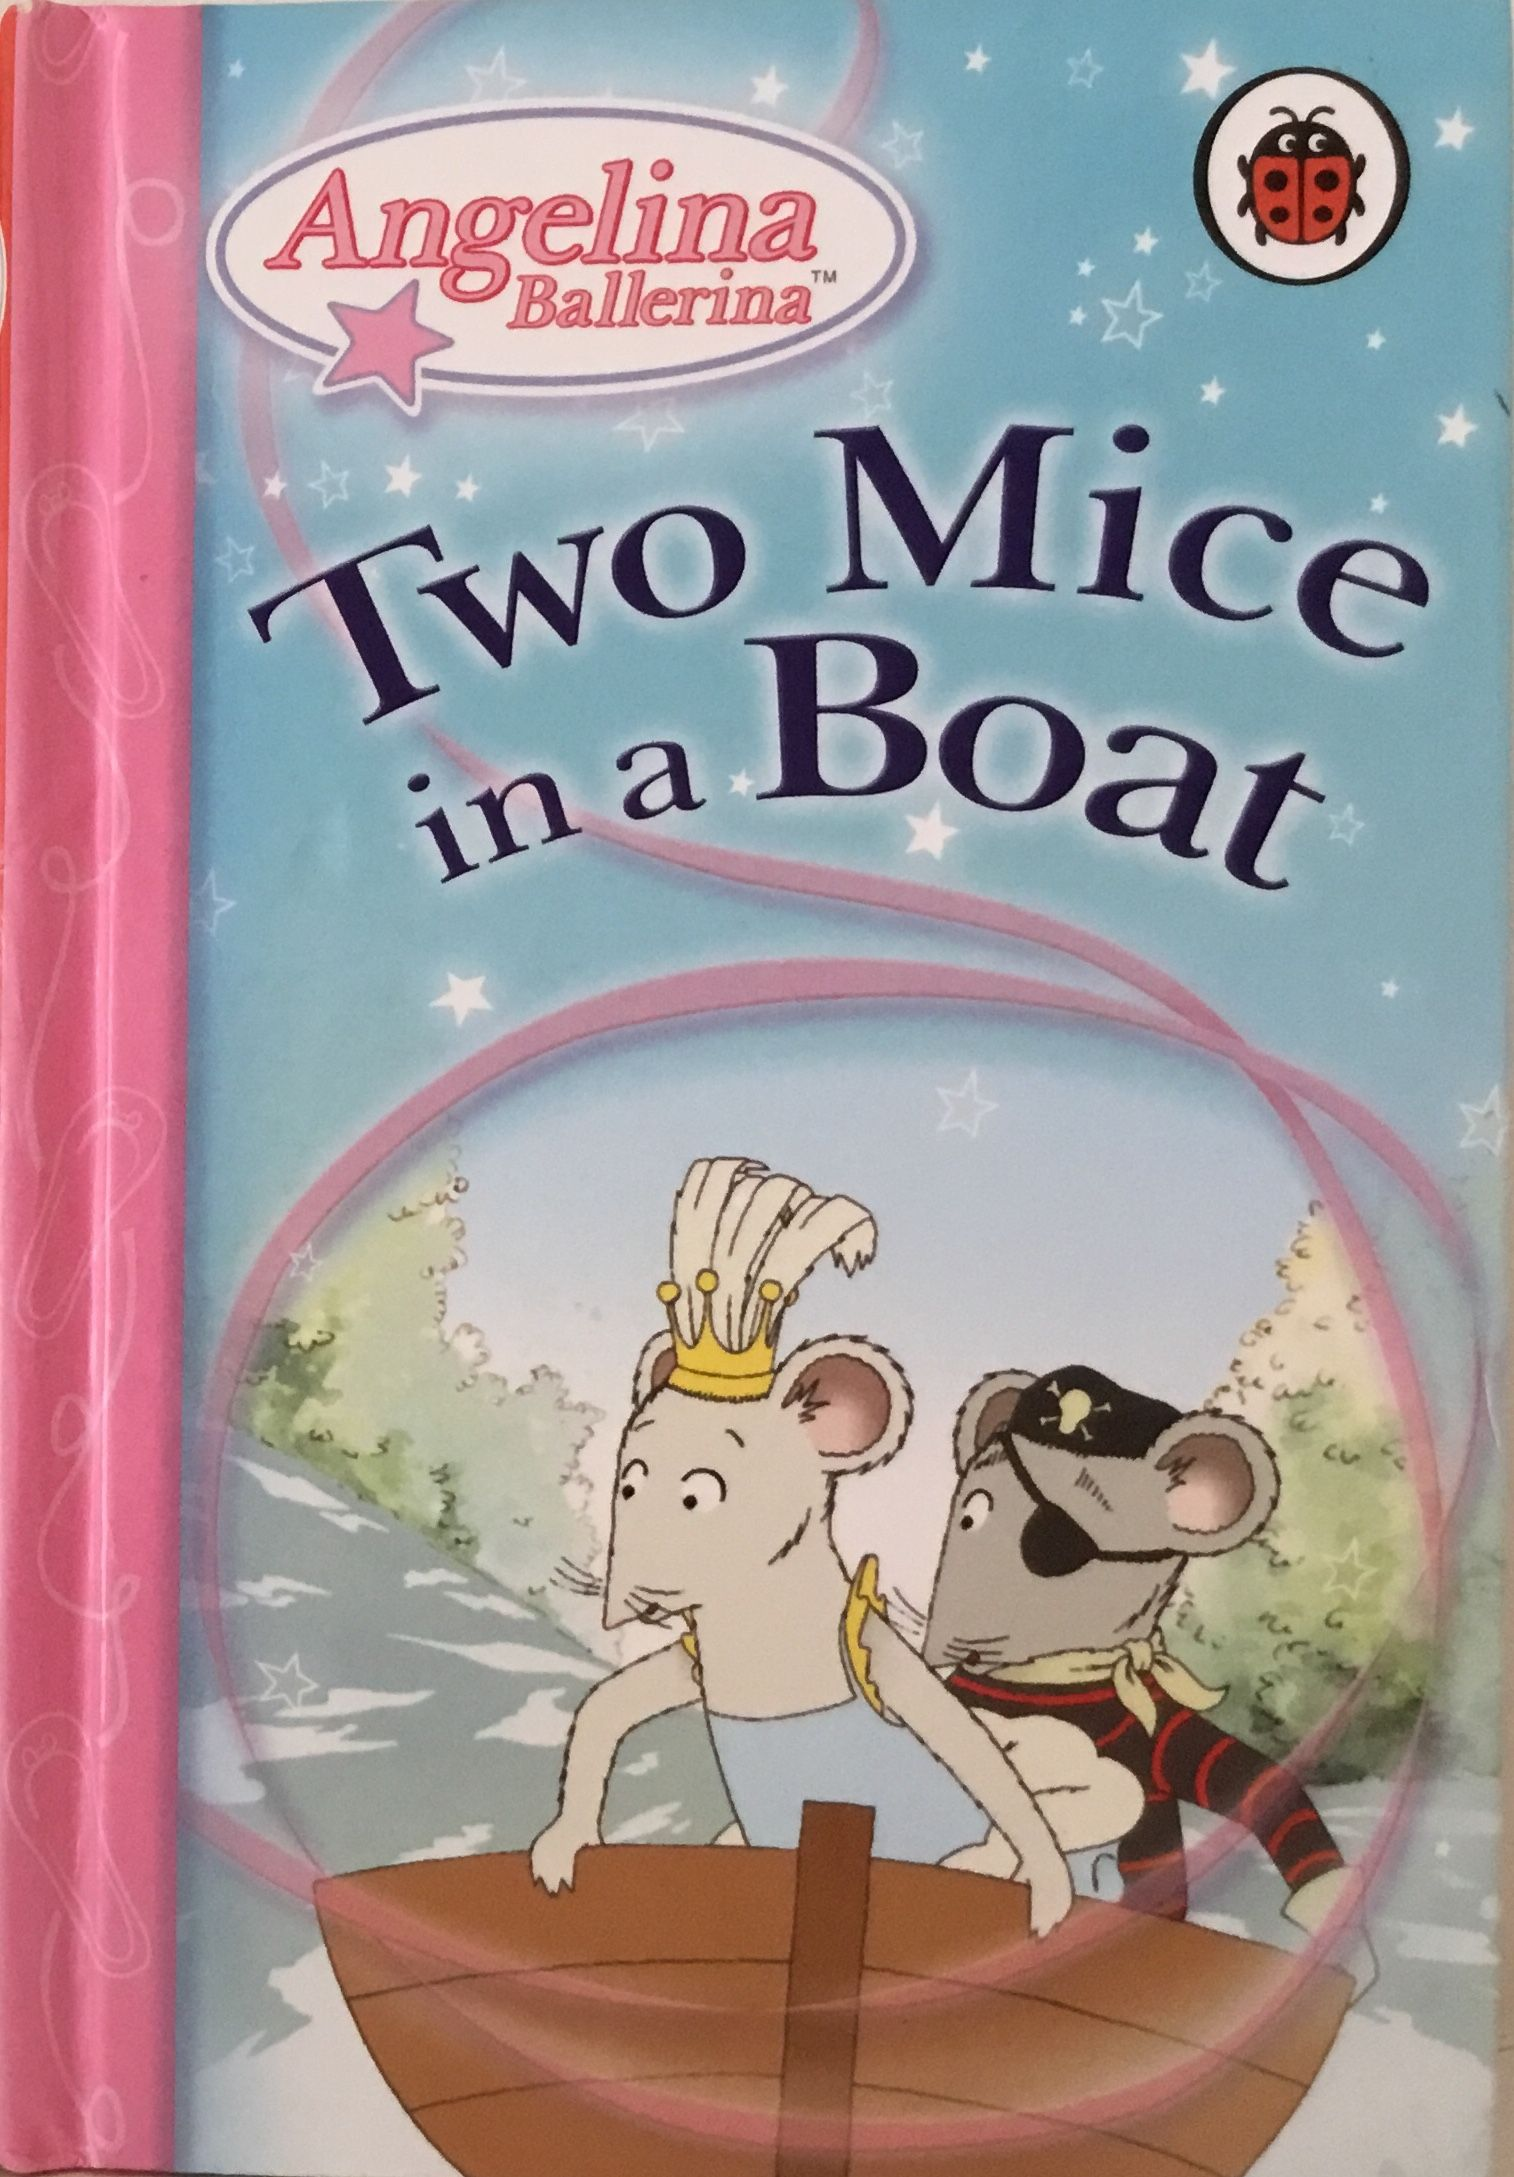 Angelina Ballerina Ladybird Book, Two Mice in a Boat.